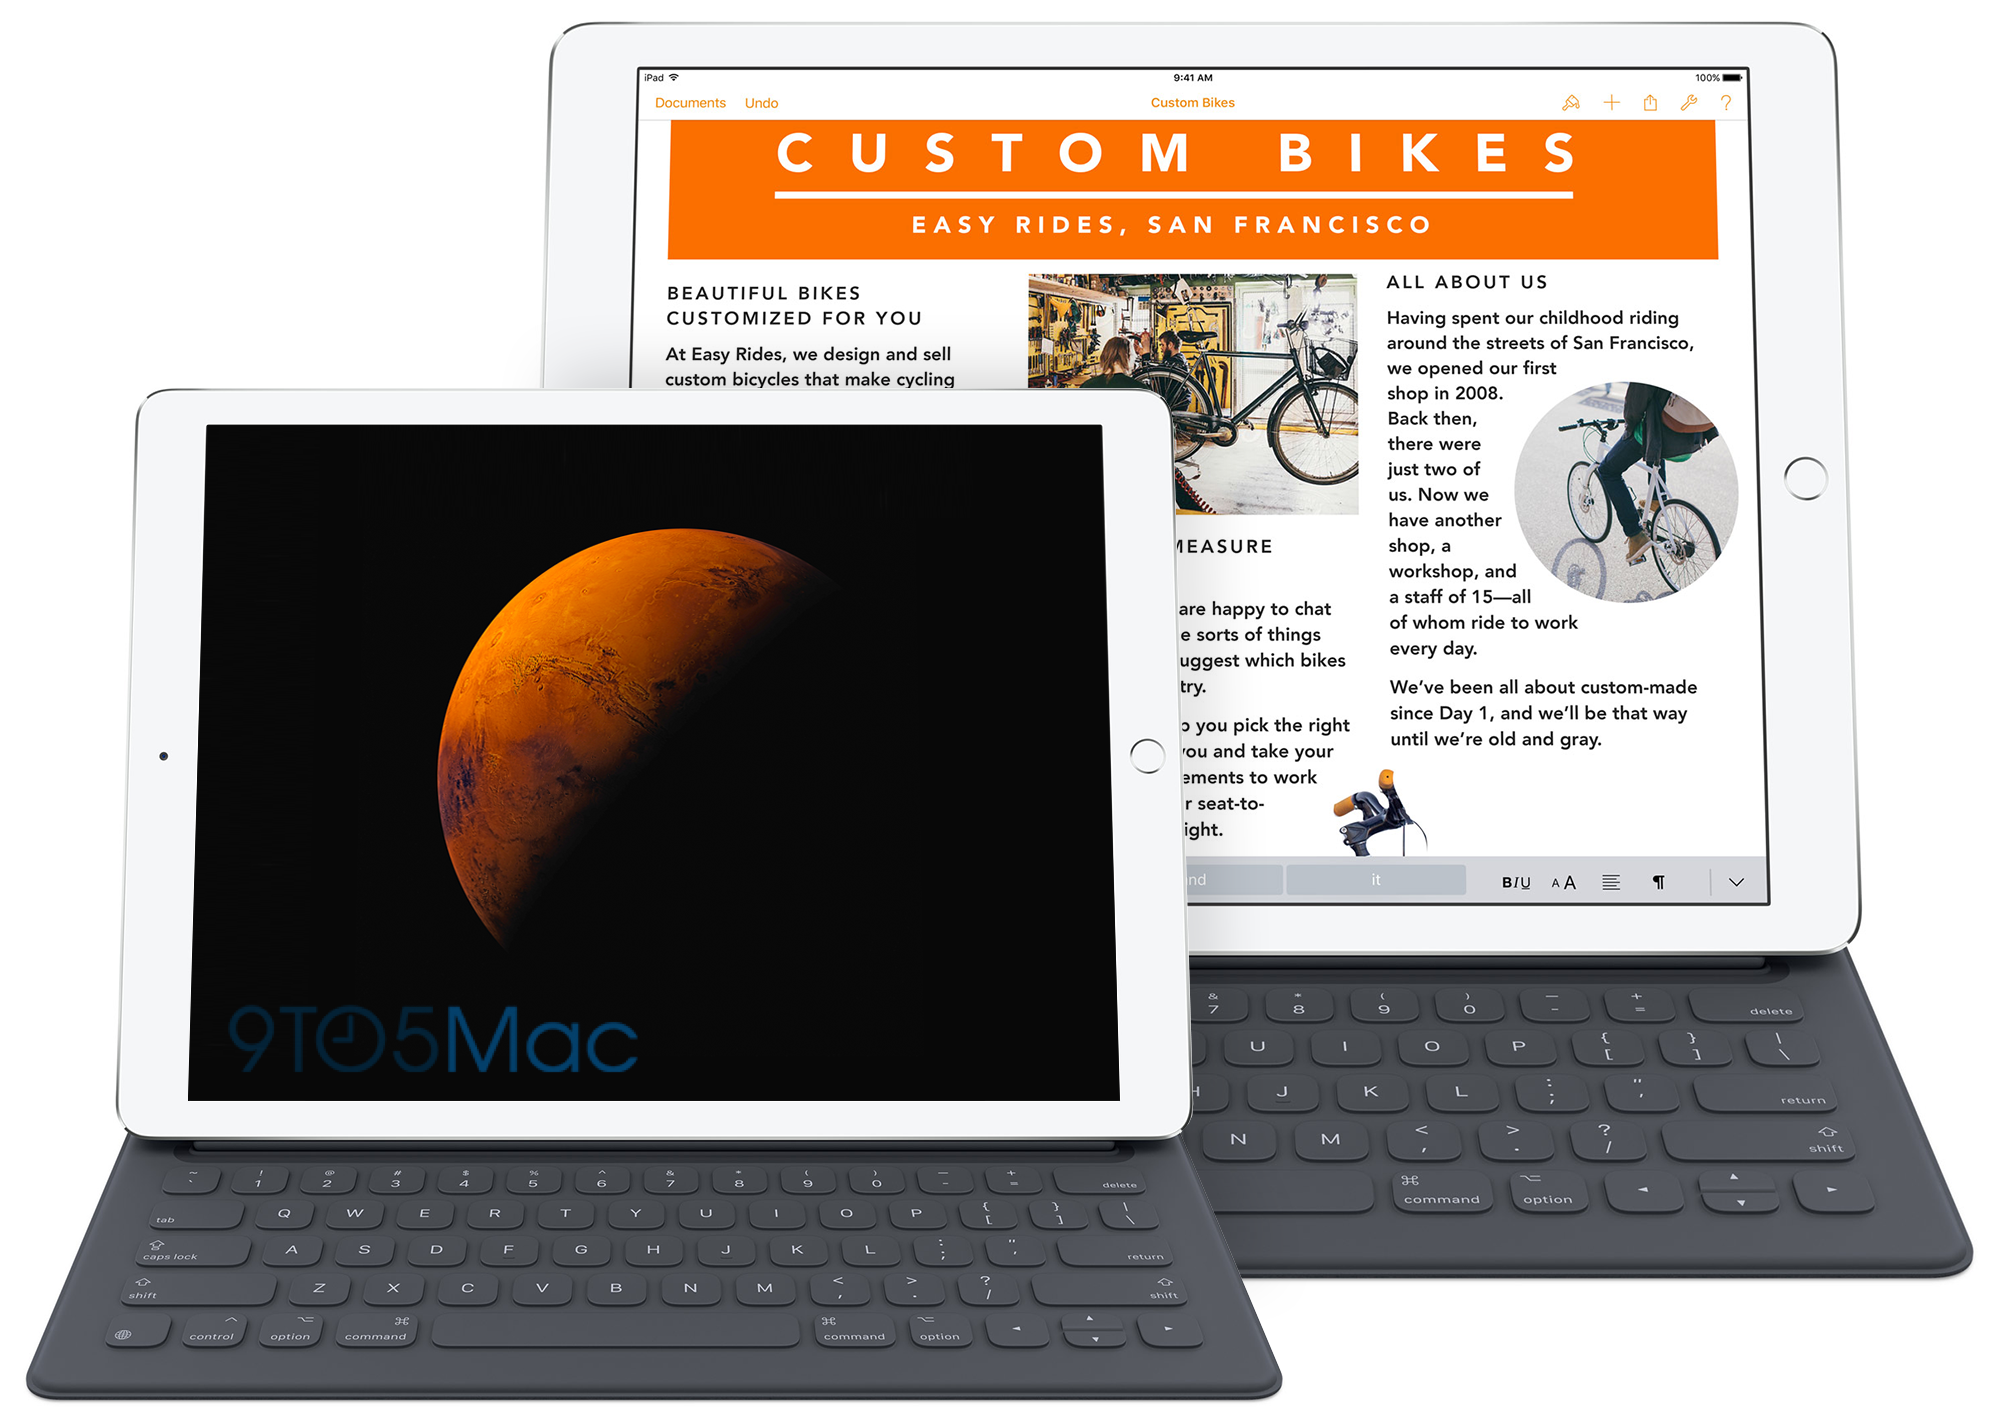 9.7-inch iPad Pro to start at higher $599 price, come in 32 GB & 128 GB capacities